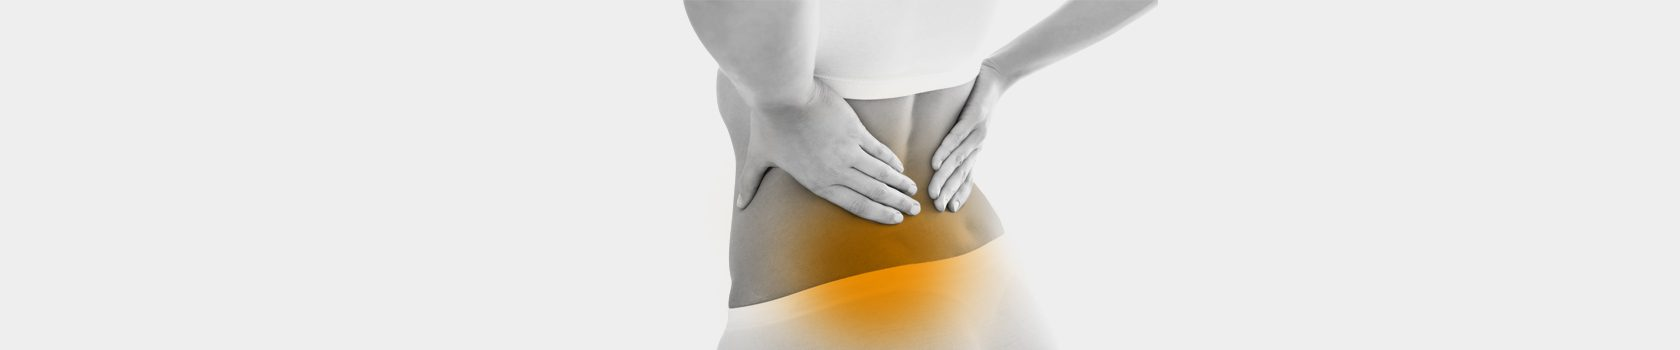 Help for Sciatica in Canberra